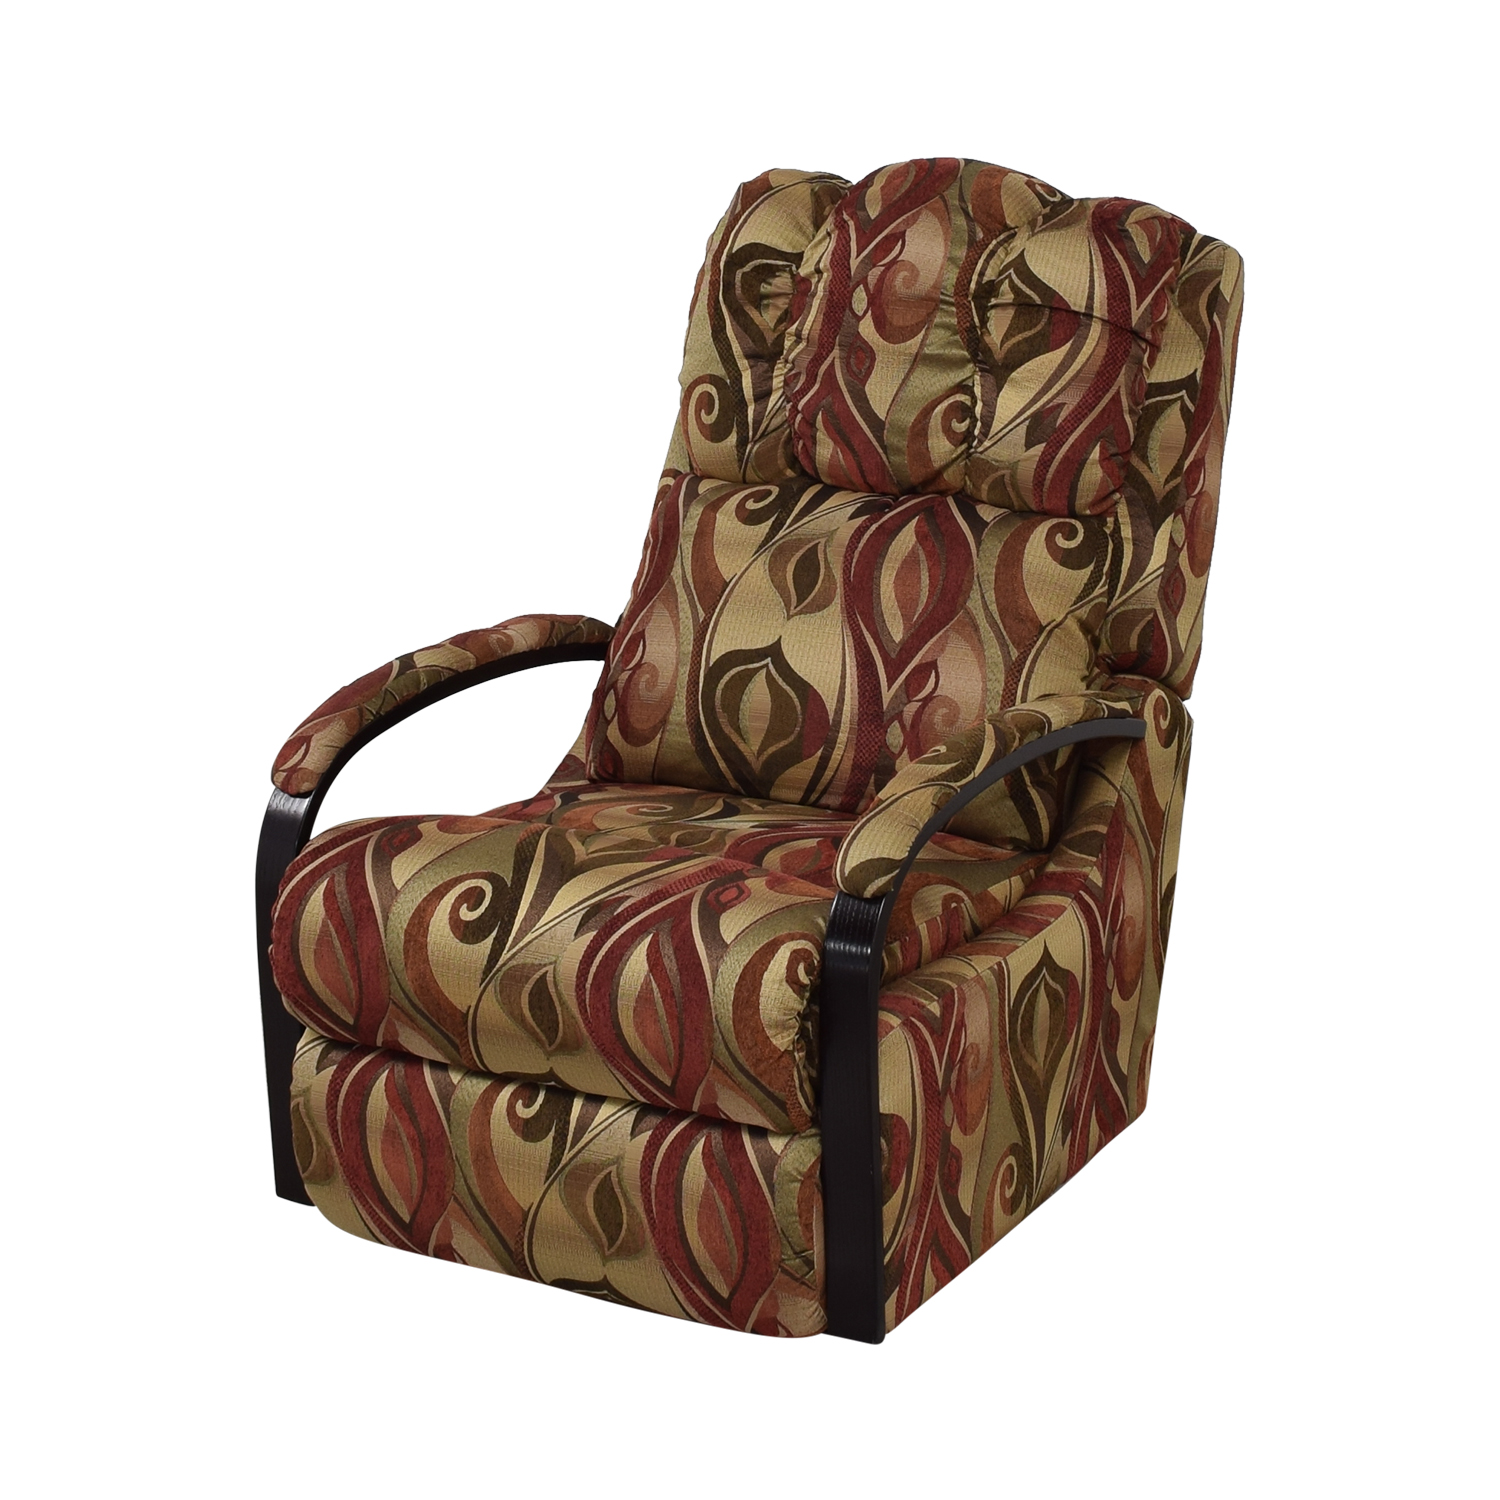 La-Z-Boy La-Z-Boy Harbor Town Reclina-Way Recliner nyc